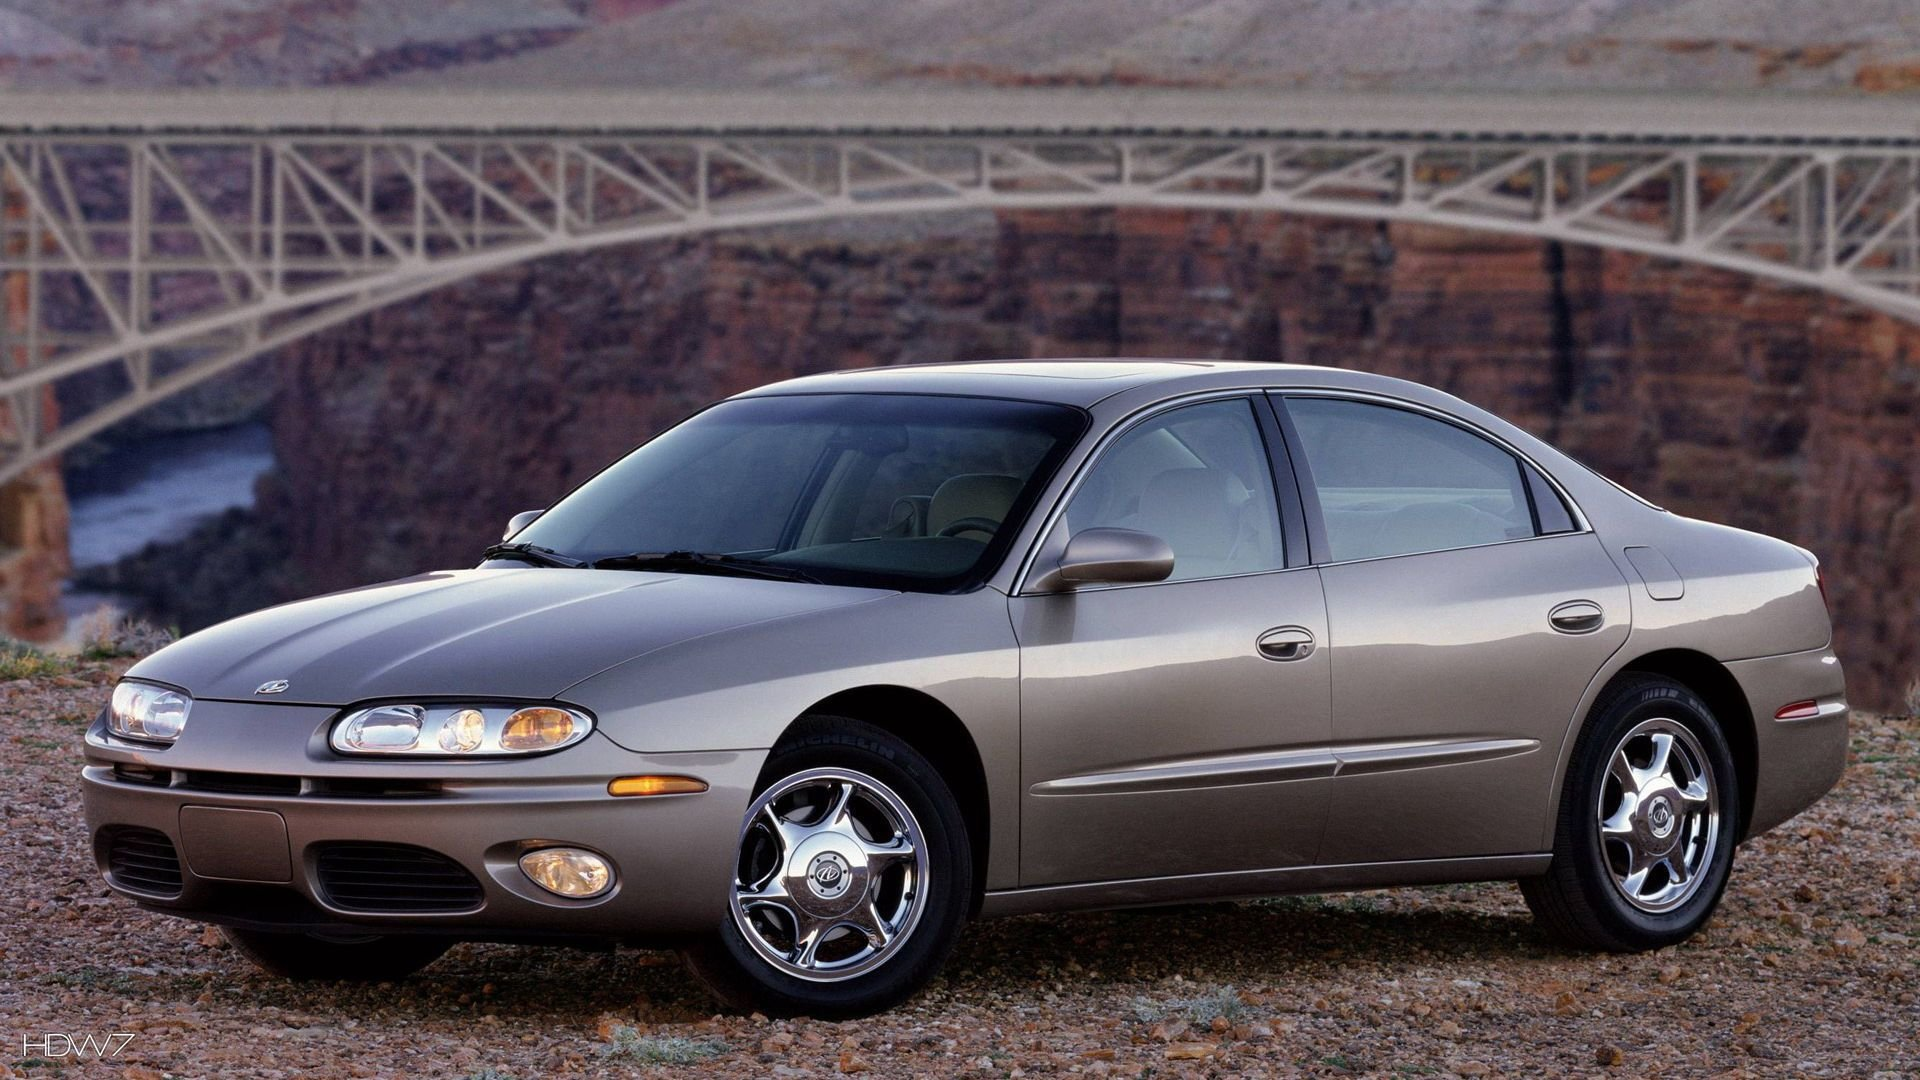 Latest Oldsmobile Aurora 2001 Car Hd Wallpaper Hd Wallpaper Free Download